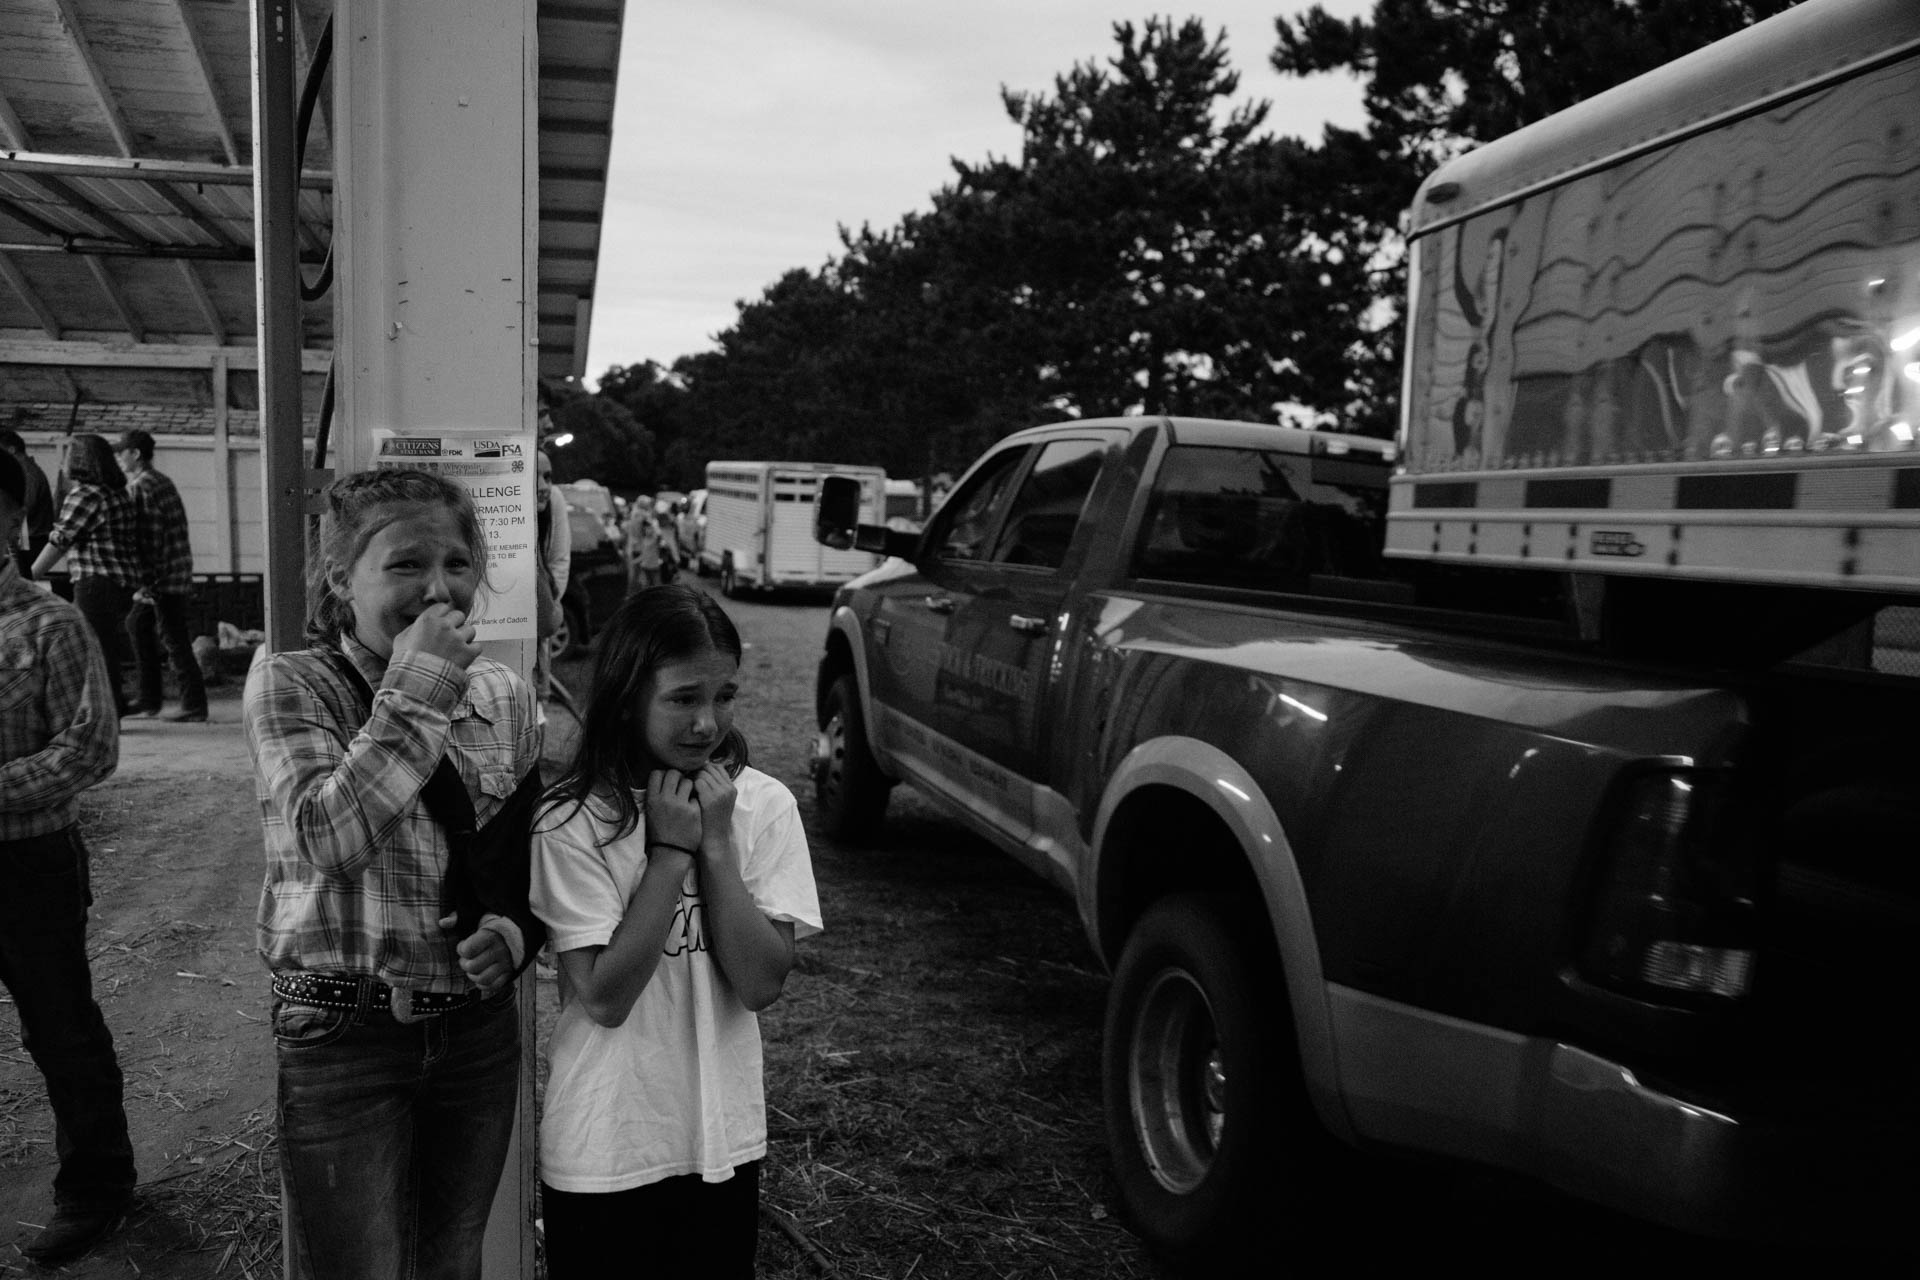 northern-wisconsin-state-fair-cattle-trucks-leave-crying-girls-watch